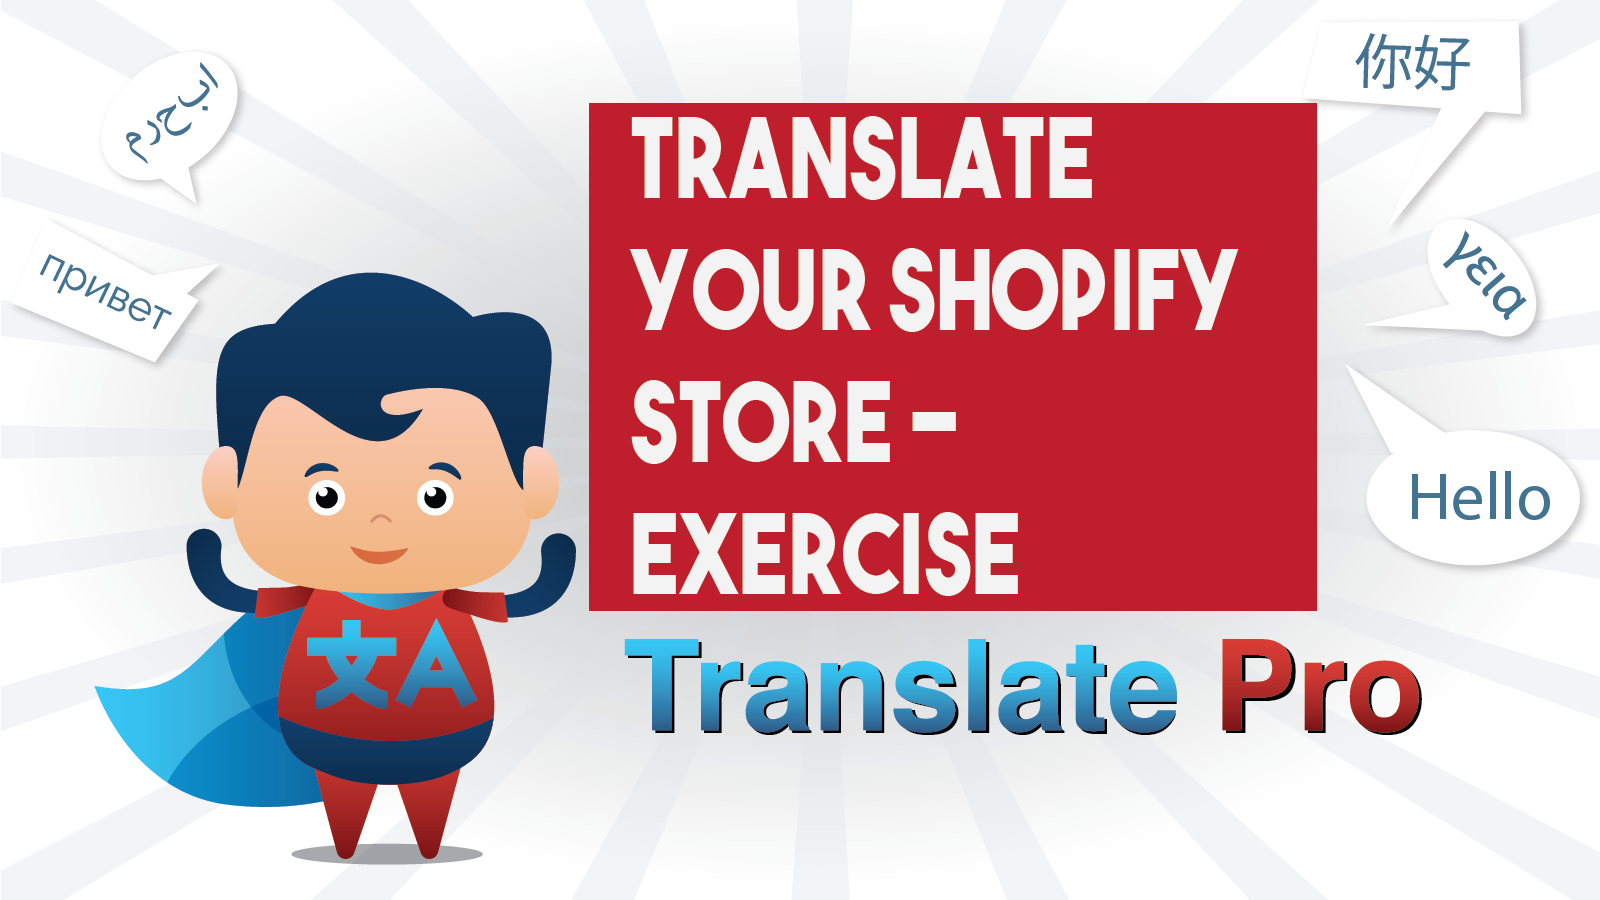 How To Translate Your Shopify Exercise Store